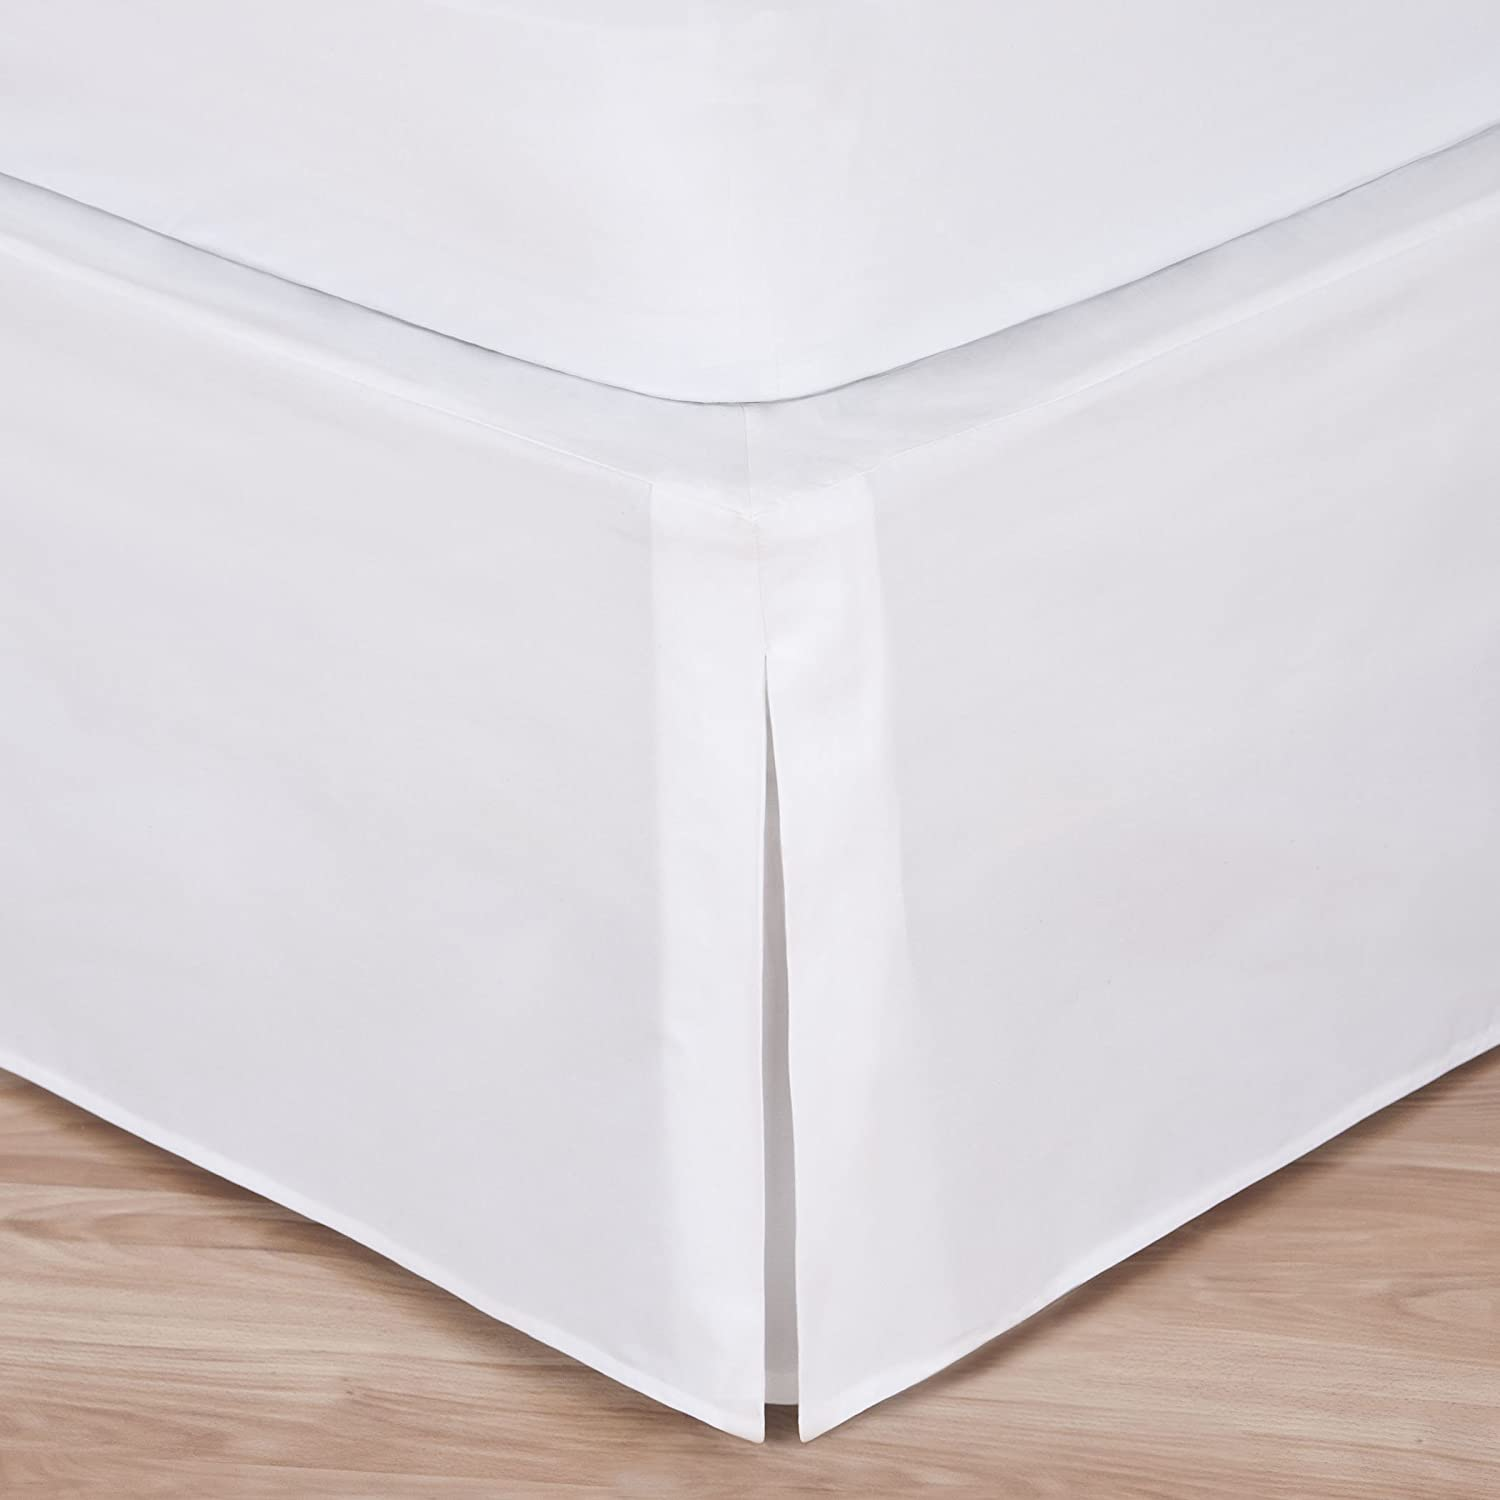 (Queen) - White Bed Skirt: Tailored Pleat, 36cm Drop (Queen) B01NAQ5IND  クイーン